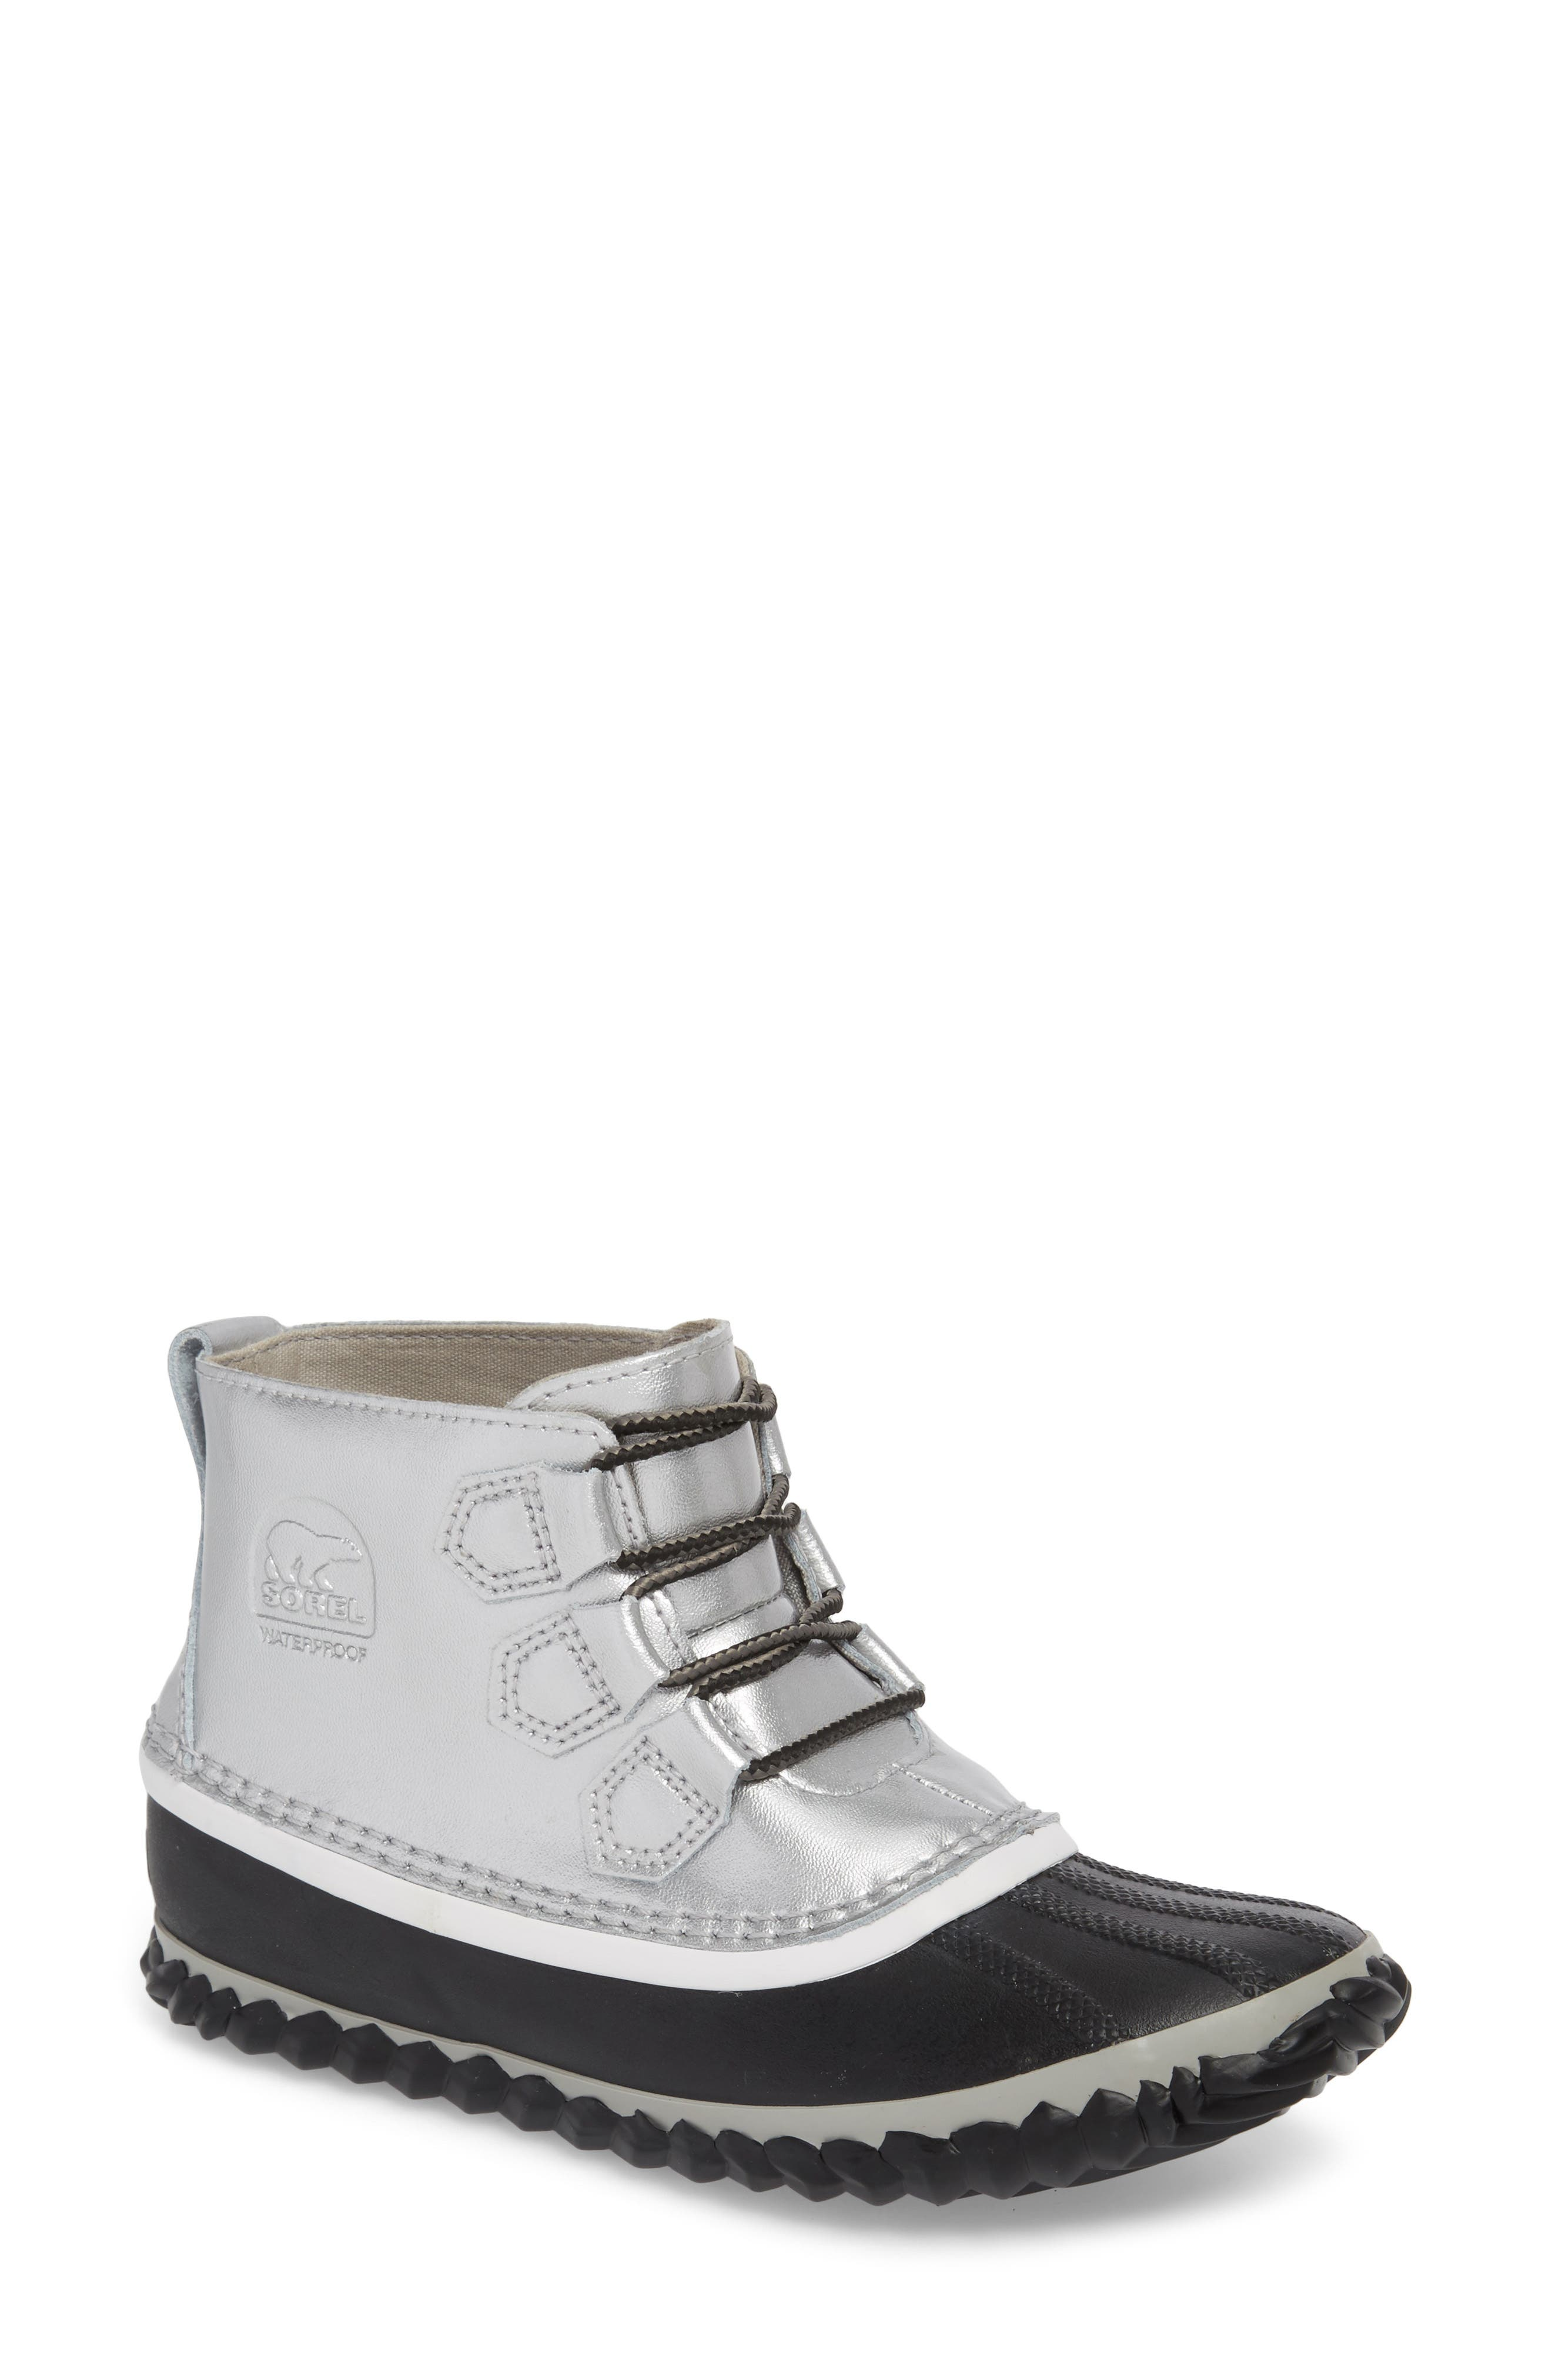 'Out N About' Leather Boot,                         Main,                         color, Lux Black